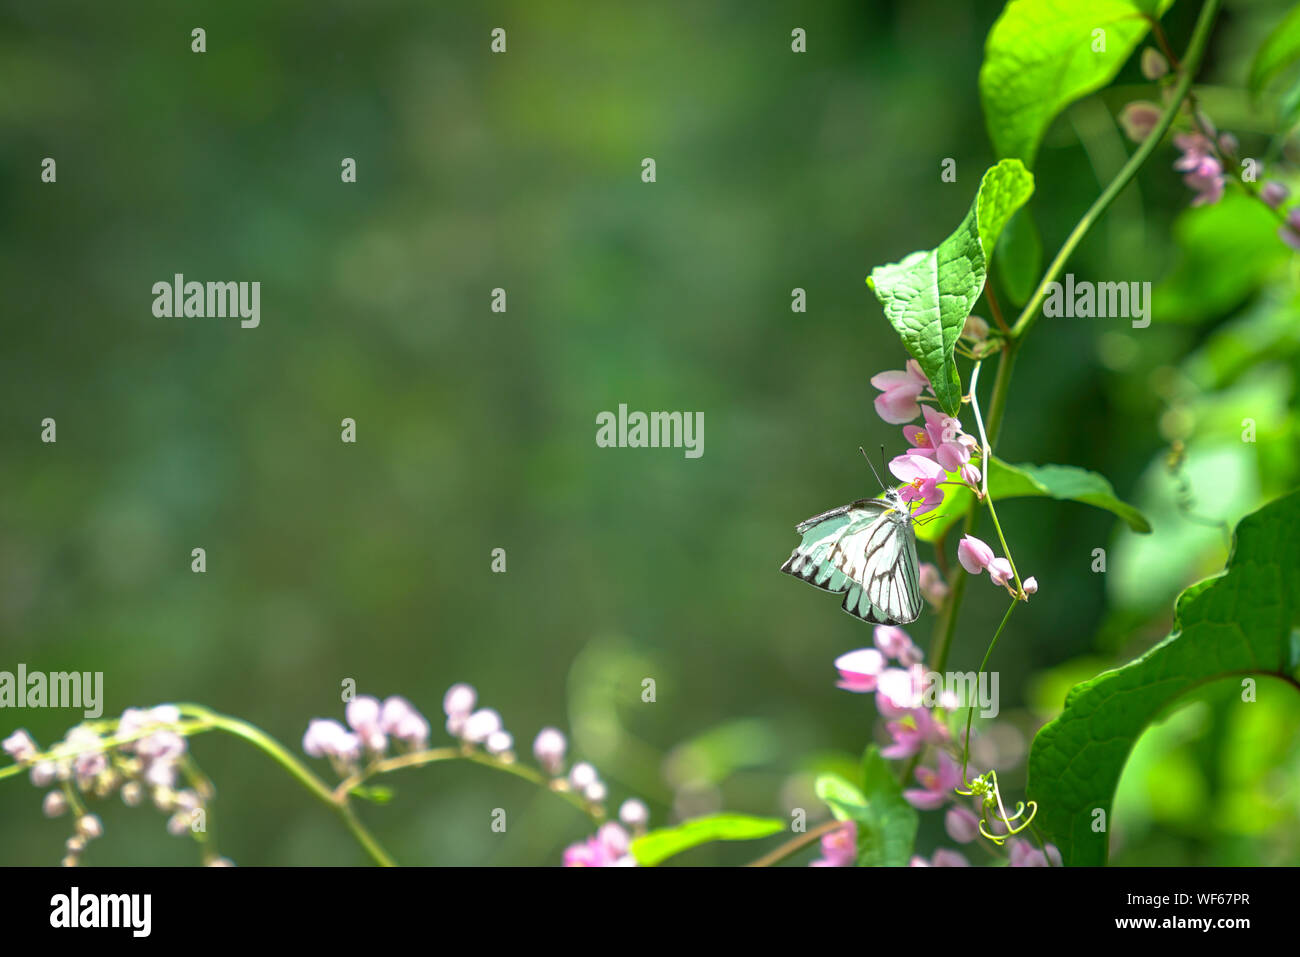 Butterfly garden, with butterflies, pink flowers and lush